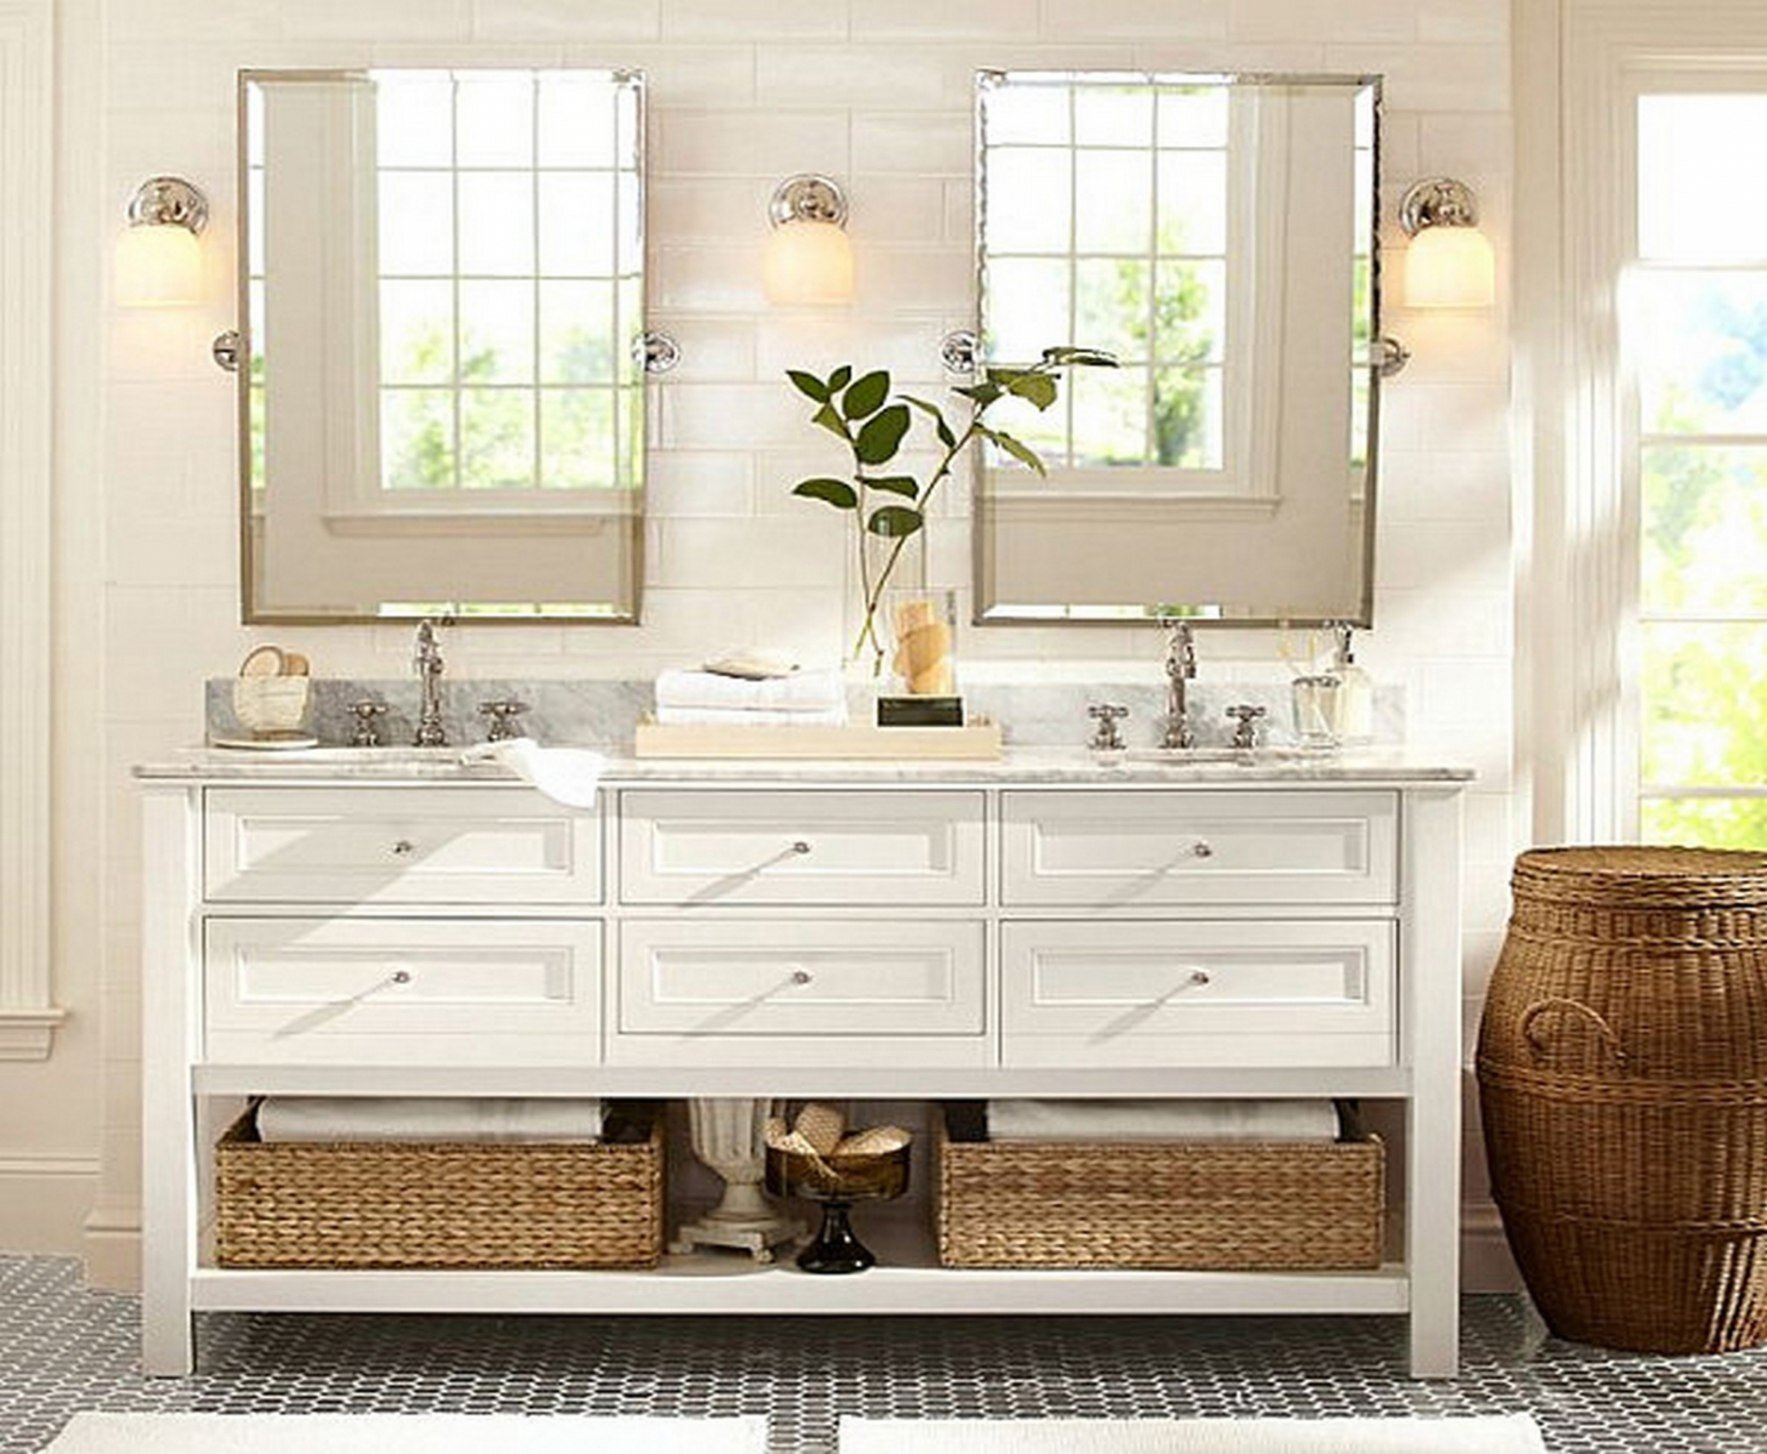 Discount bathroom vanities memphis tn previous next for Pottery barn teen bathroom